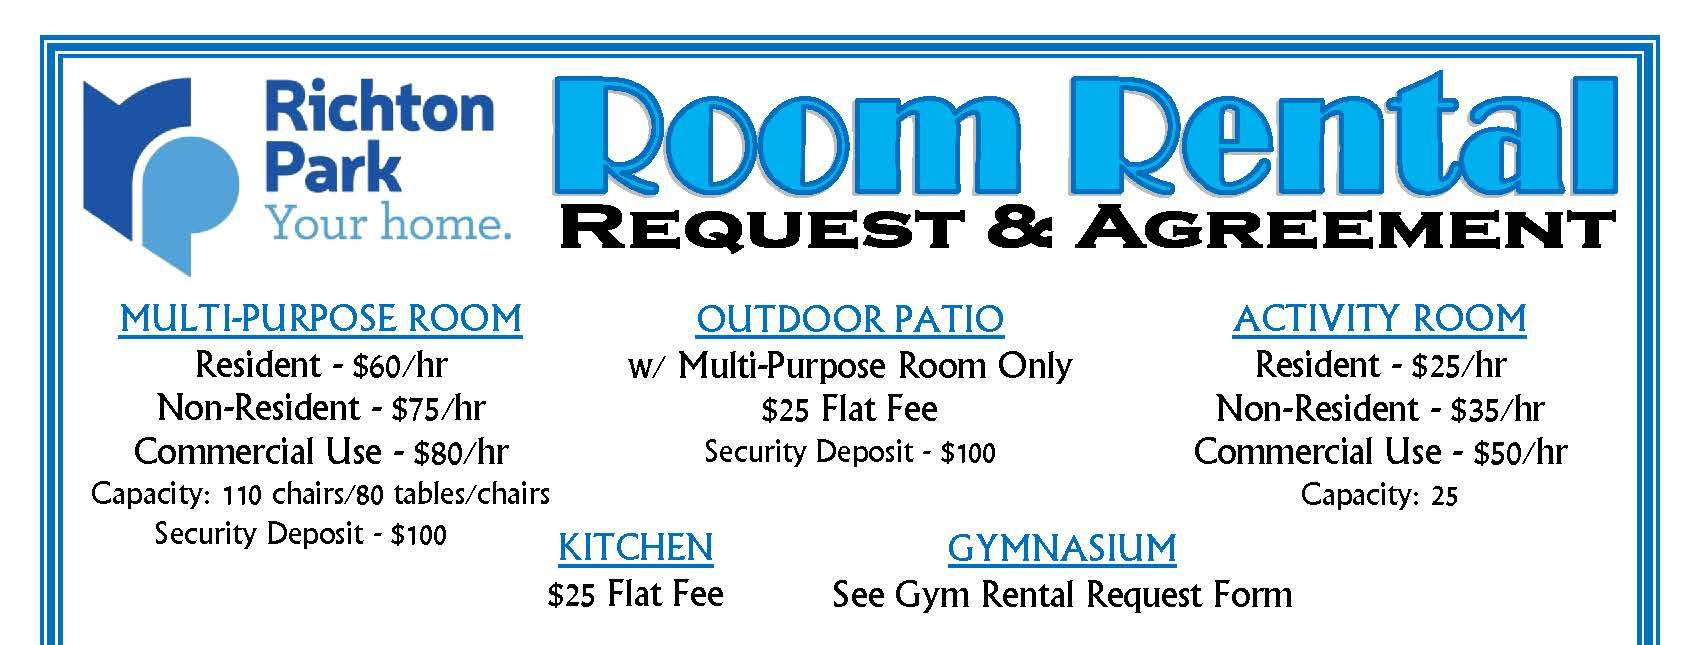 ROOM RENTAL REQUEST FORM - Rates